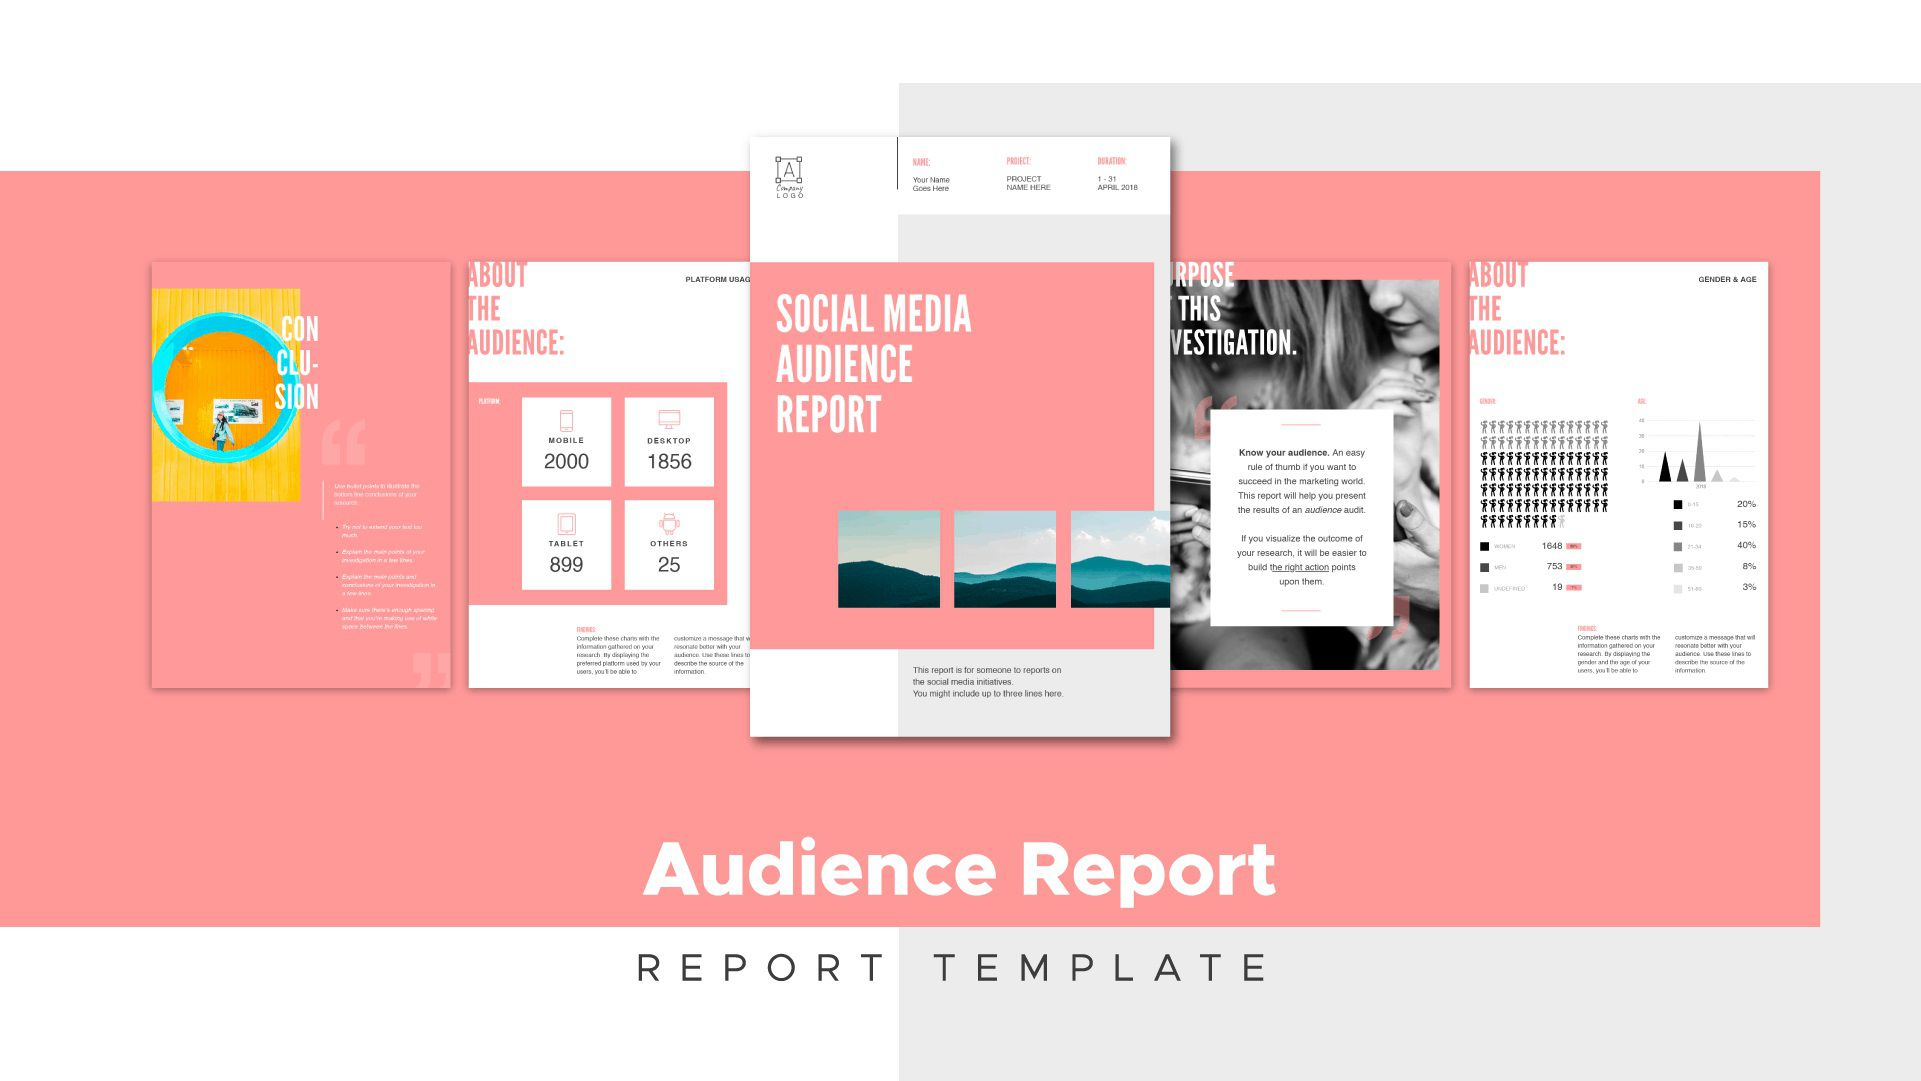 009 Top Social Media Report Template High Resolution  Powerpoint Free Download Analytic WordFull